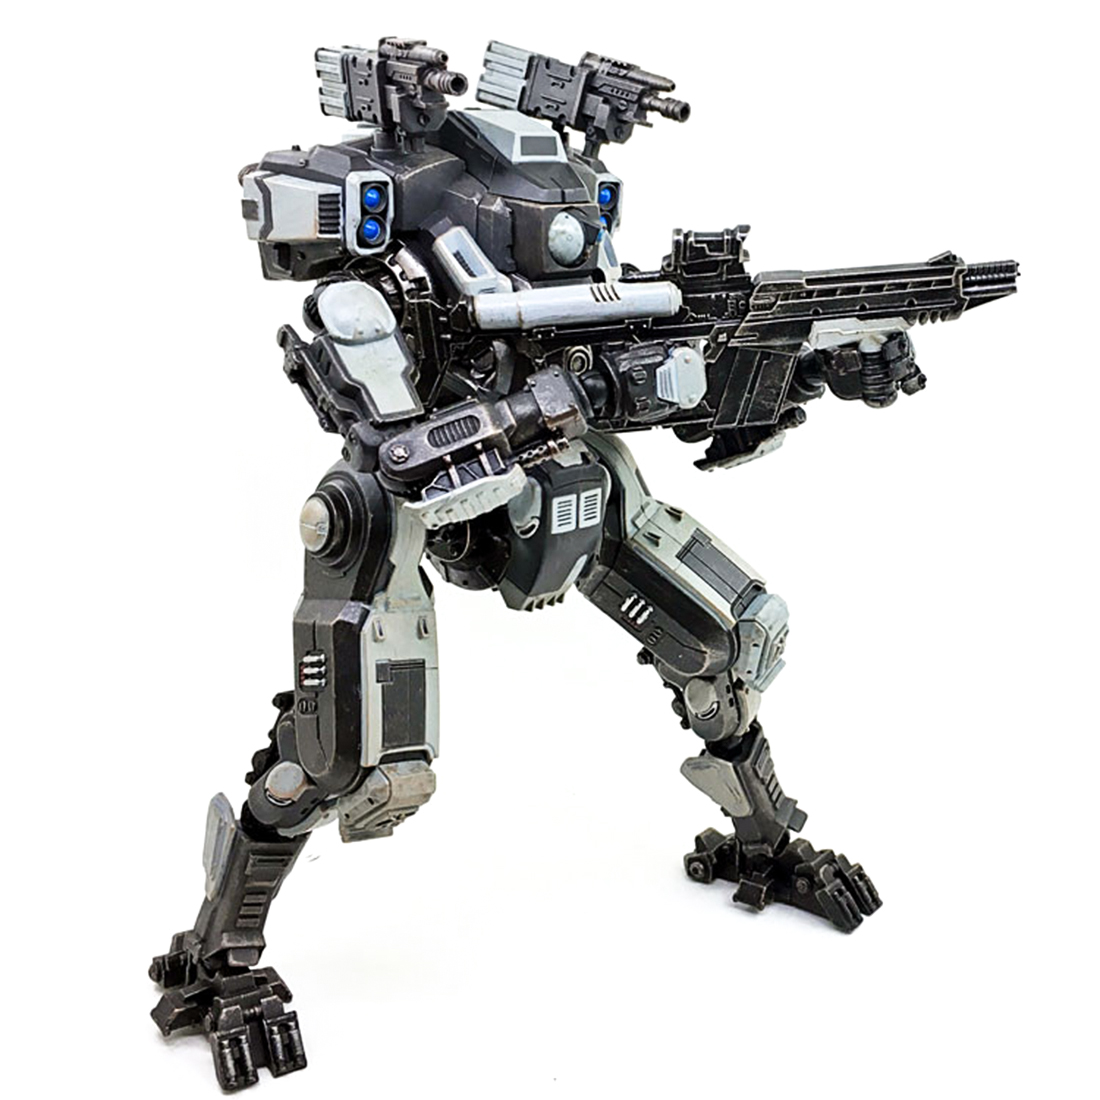 1/6 Scale Movable Mecha Action Figure Toys New Attack DIY 3D Assembly Fine Soldier Model Birthday Gift Present for Mech Fans